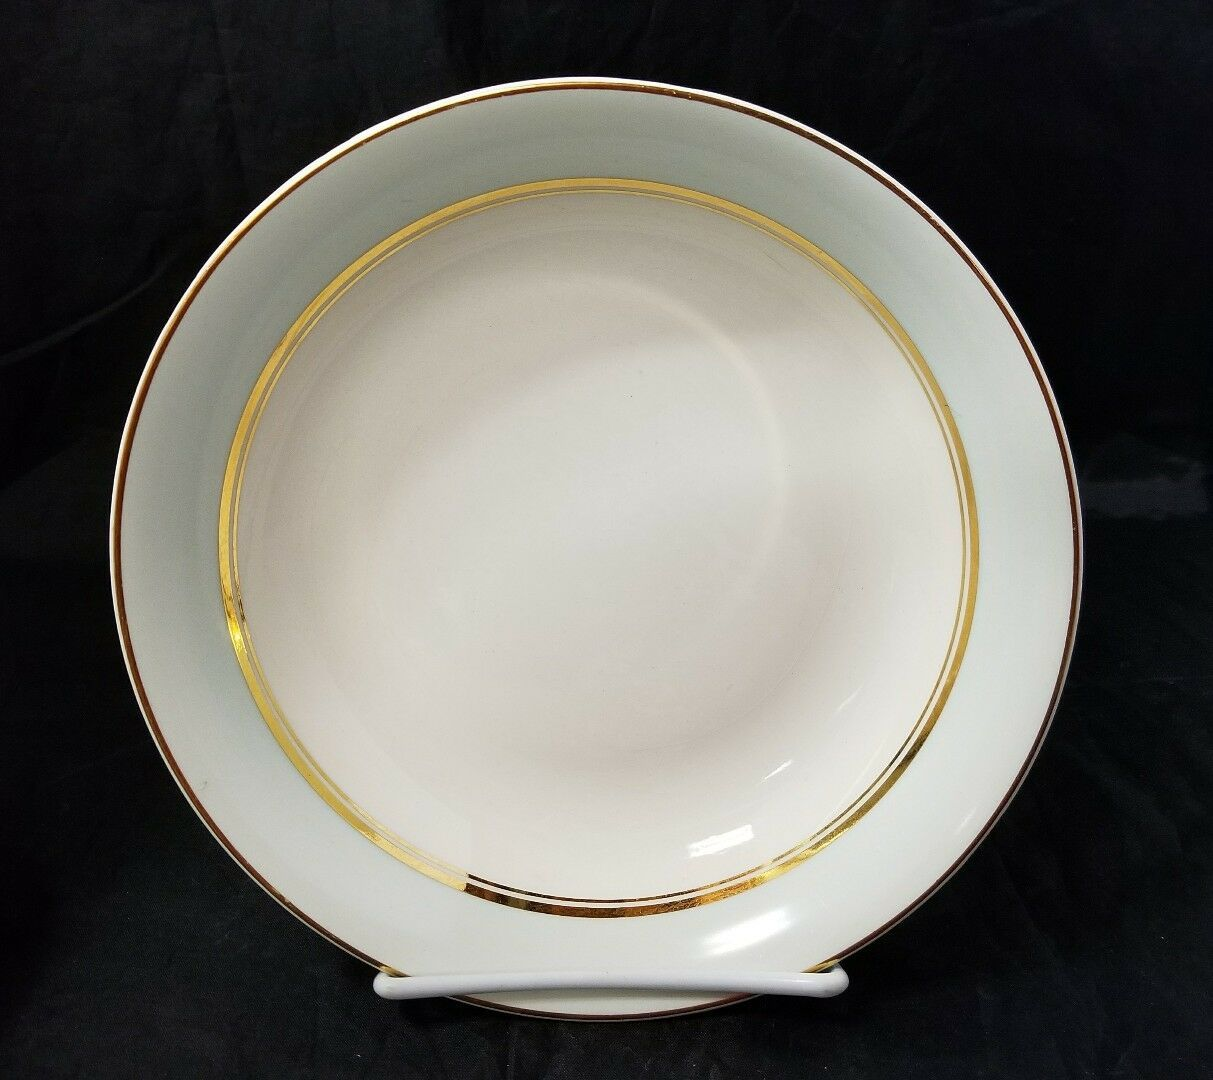 The French Saxon China Co Soup Salad Bowls Set of 4, 22kt Gold, Pottery Made USA image 4